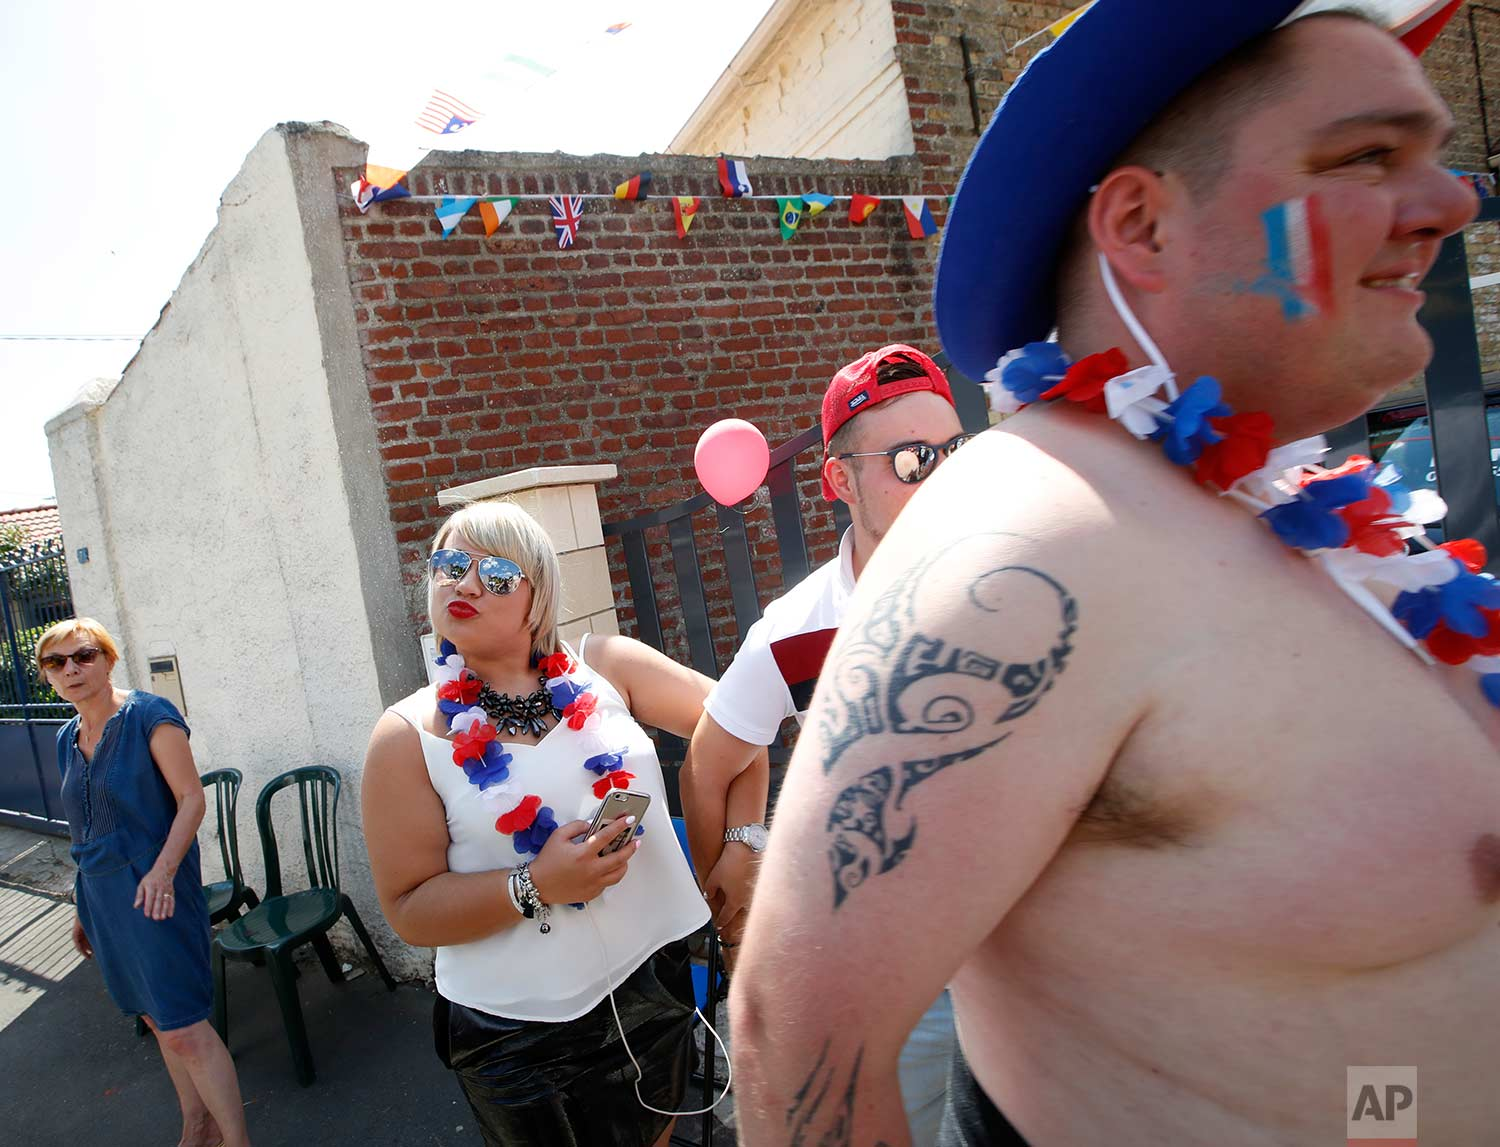 Spectators wait for the pack to pass during the ninth stage of the Tour de France cycling race over 156.5 kilometers (97.2 miles) with start in Arras and finish in Roubaix, France, Sunday, July 15, 2018. (AP Photo/Christophe Ena)